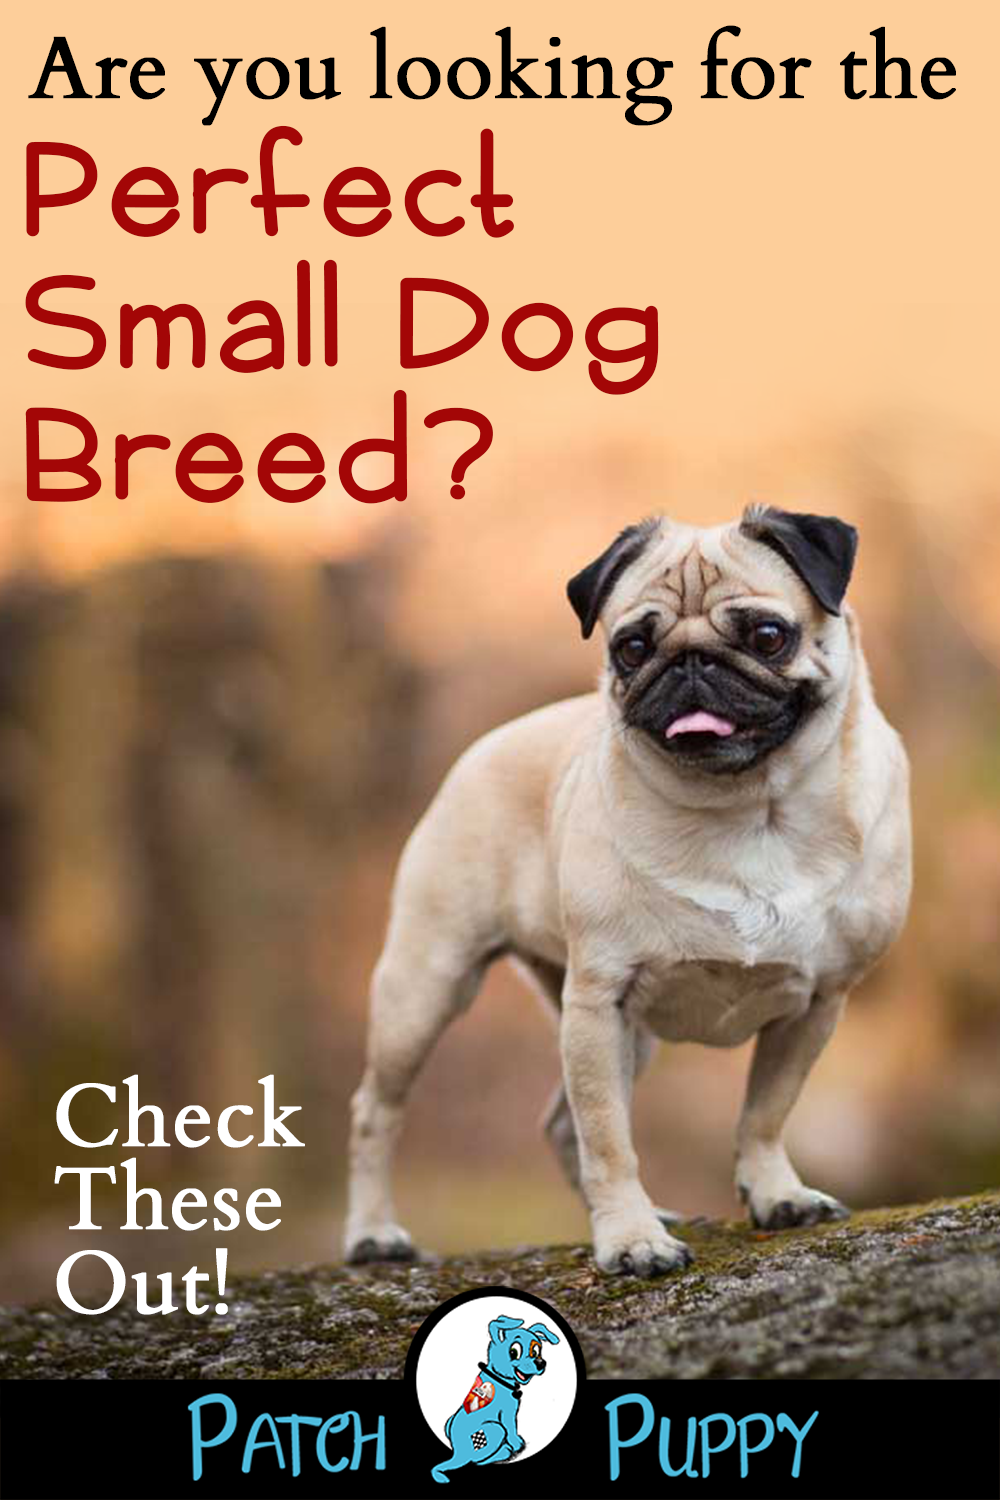 12 Dog Breeds That Are Small With Pictures With Images Dog Breeds Small Dog Breeds Breeds